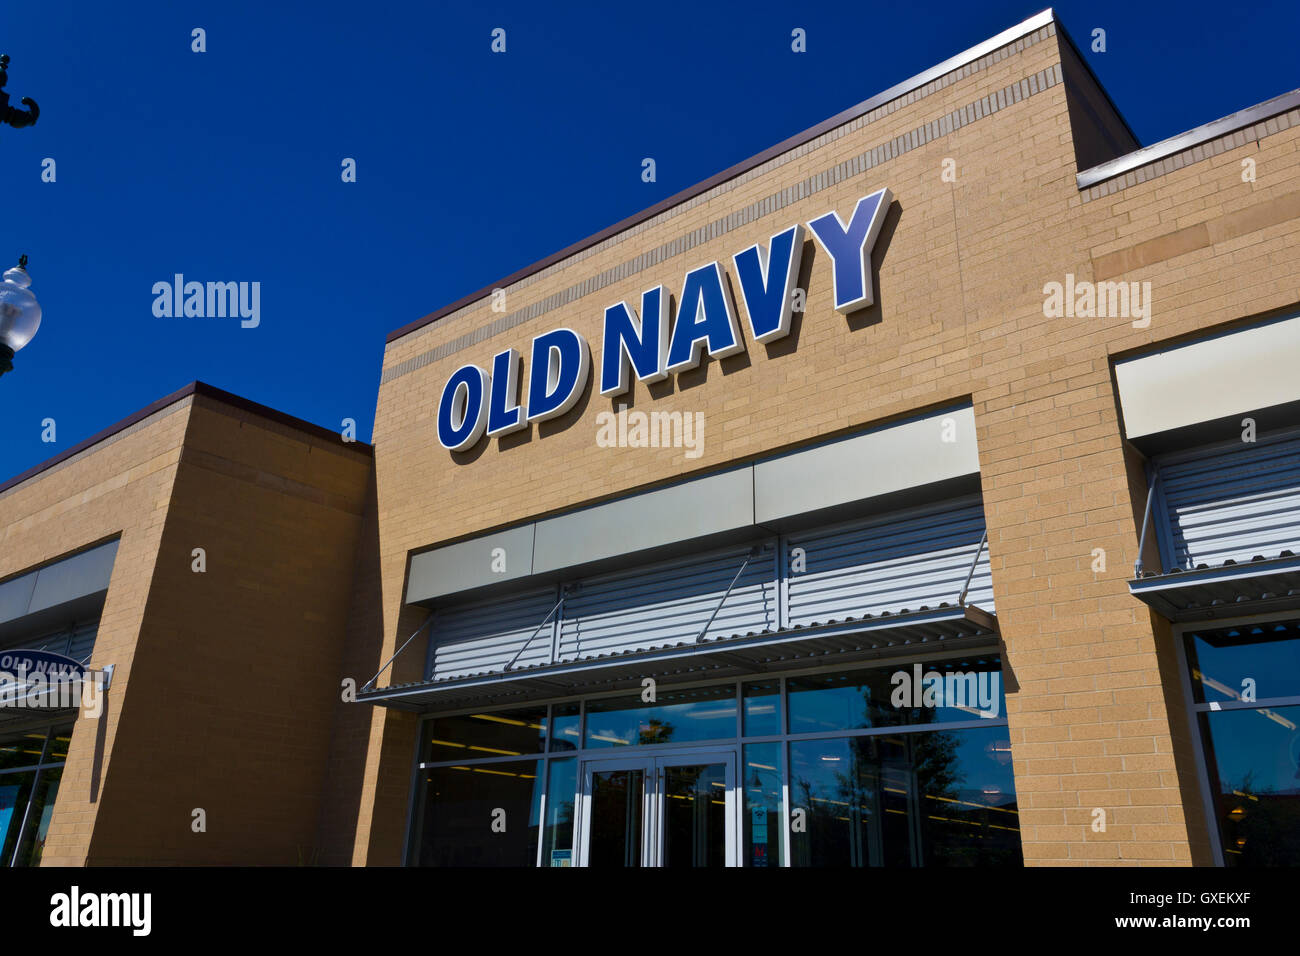 Indianapolis - Circa June 2016: Old Navy Retail Mall Location. Old Navy is a Division of Gap Inc. III - Stock Image